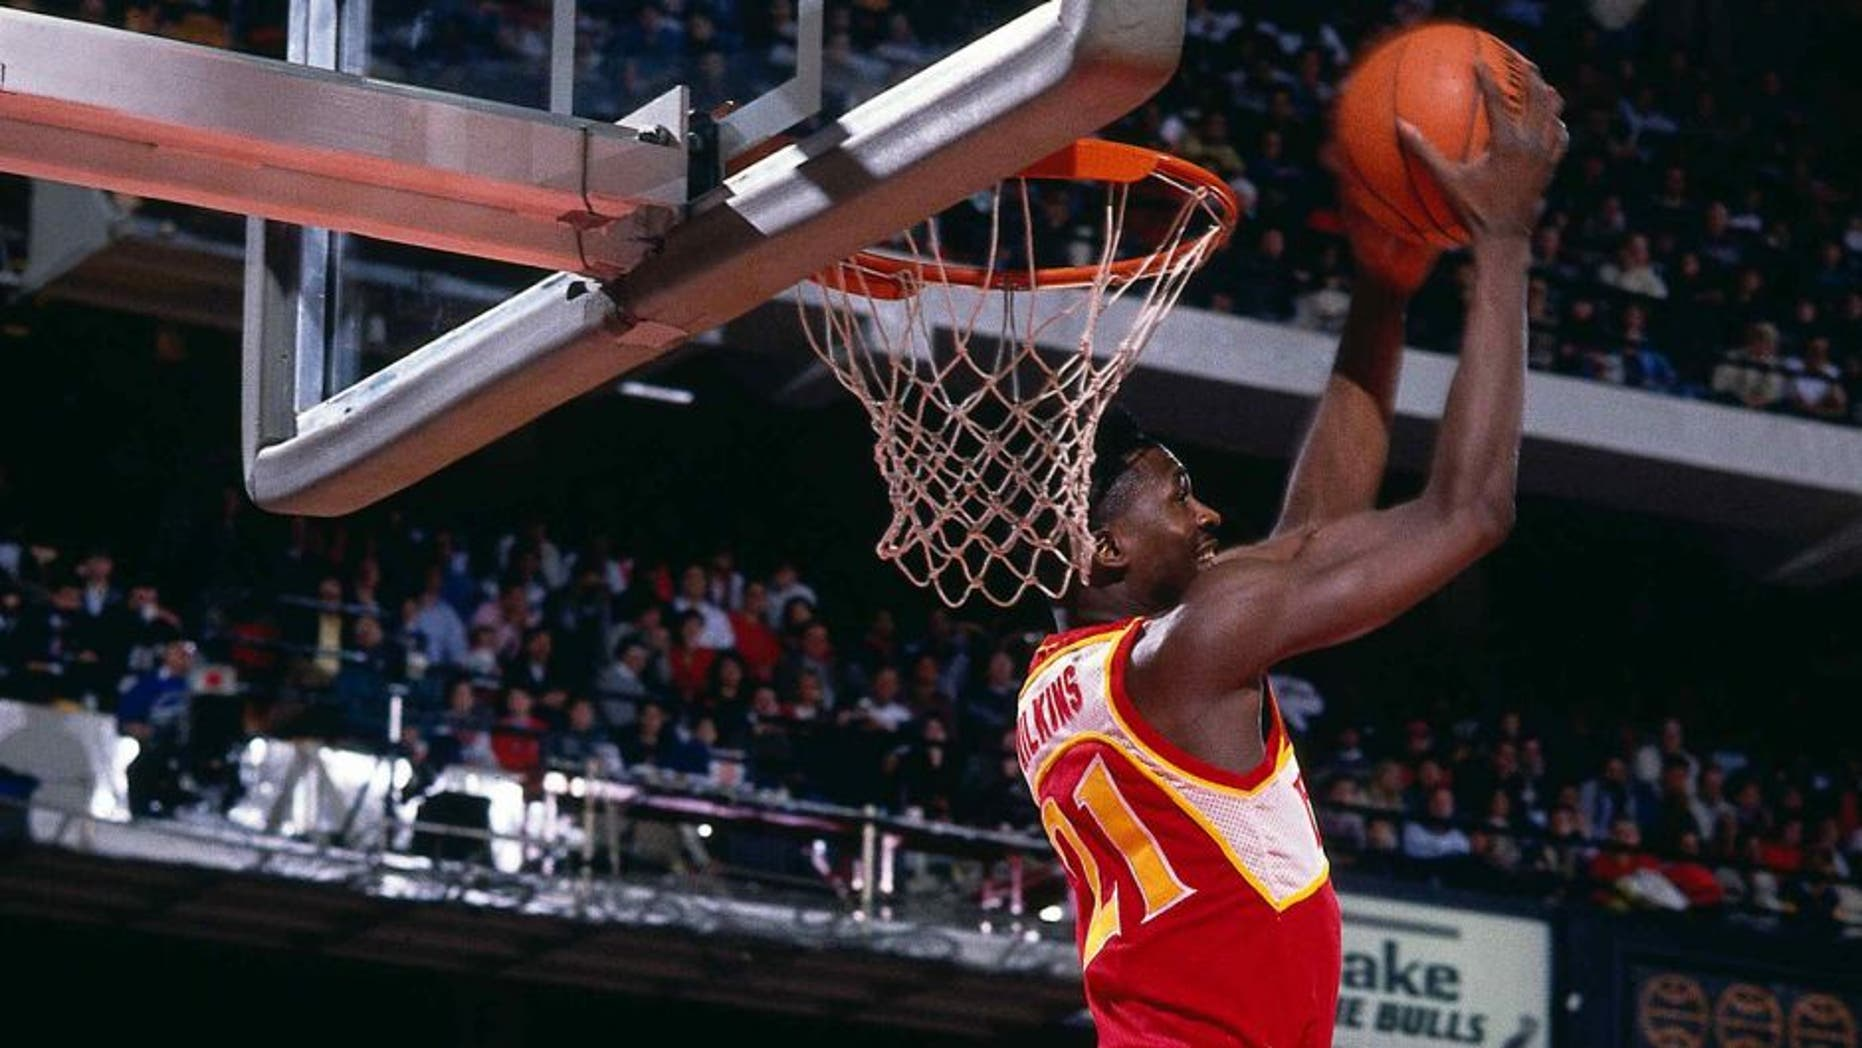 DALLAS - FEBRUARY 9: Dominique Wilkins #21 of the Atlanta Hawks dunks during the Gatorade Slam Dunk Championship during the 1986 NBA All-Star Weekend on February 9, 1986 in Dallas, Texas. NOTE TO USER: User expressly acknowledges and agrees that, by downloading and or using this photograph, User is consenting to the terms and conditions of the Getty Images License Agreement. Mandatory Copyright Notice: Copyright 1986 NBAE (Photo by Andrew D. Bernstein/NBAE via Getty Images)